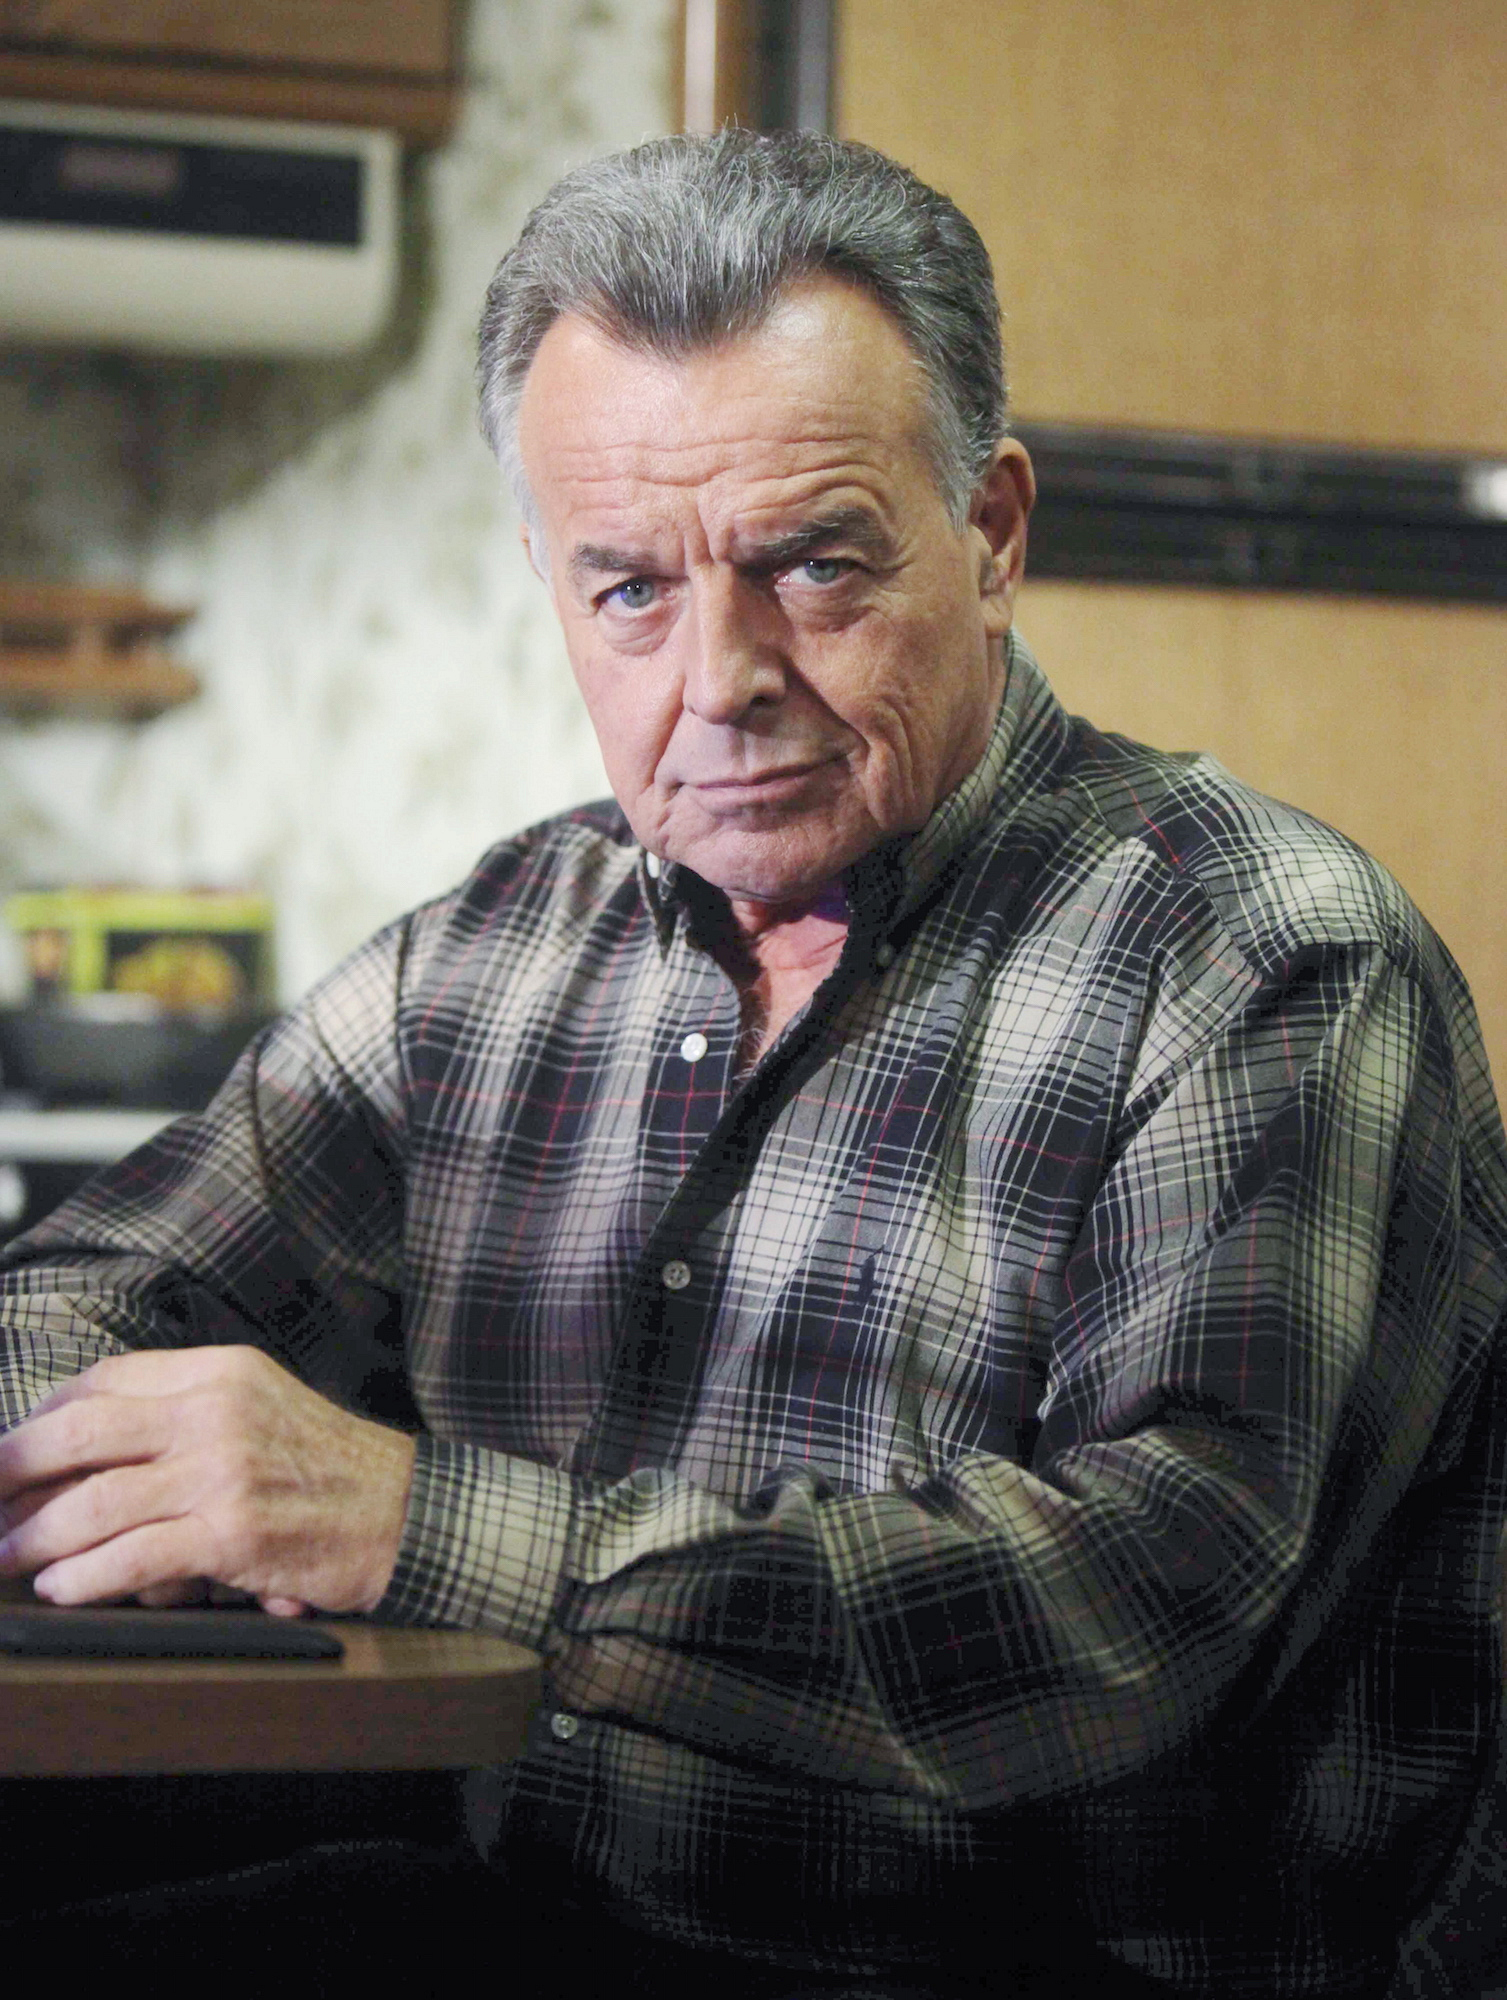 Ray wise orgy pics 80